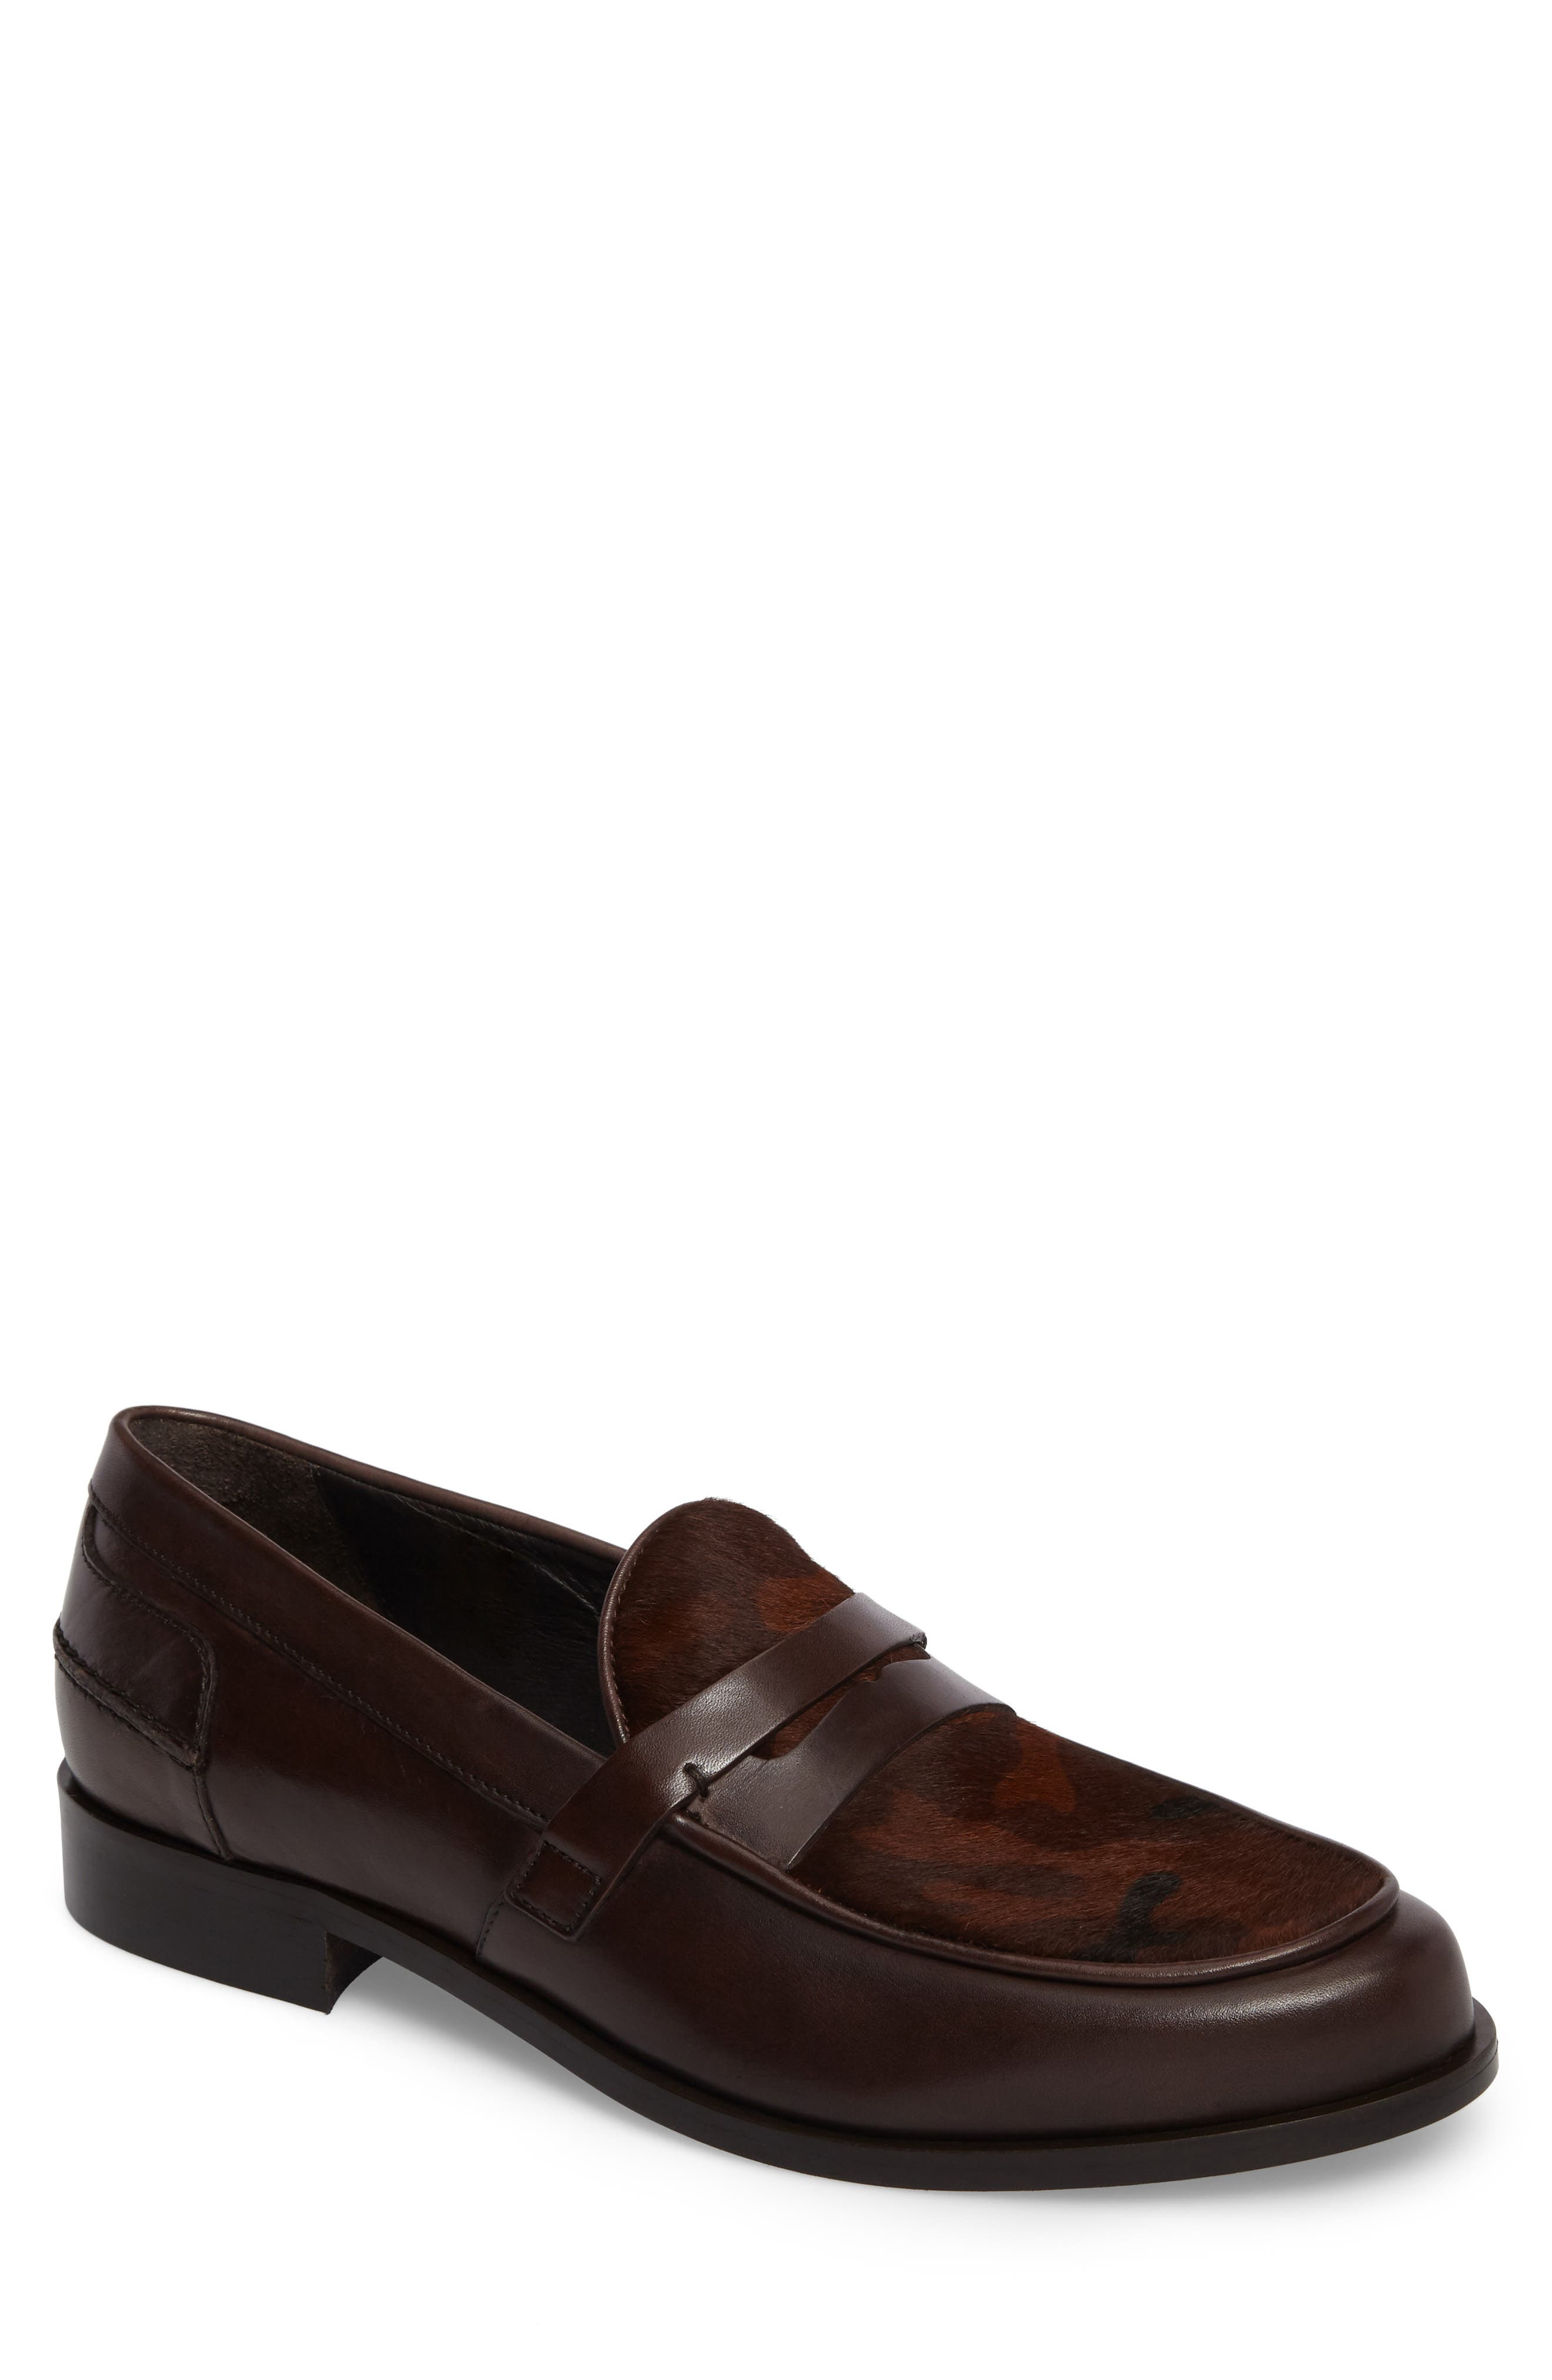 Sawyer Penny Loafer,                             Main thumbnail 2, color,